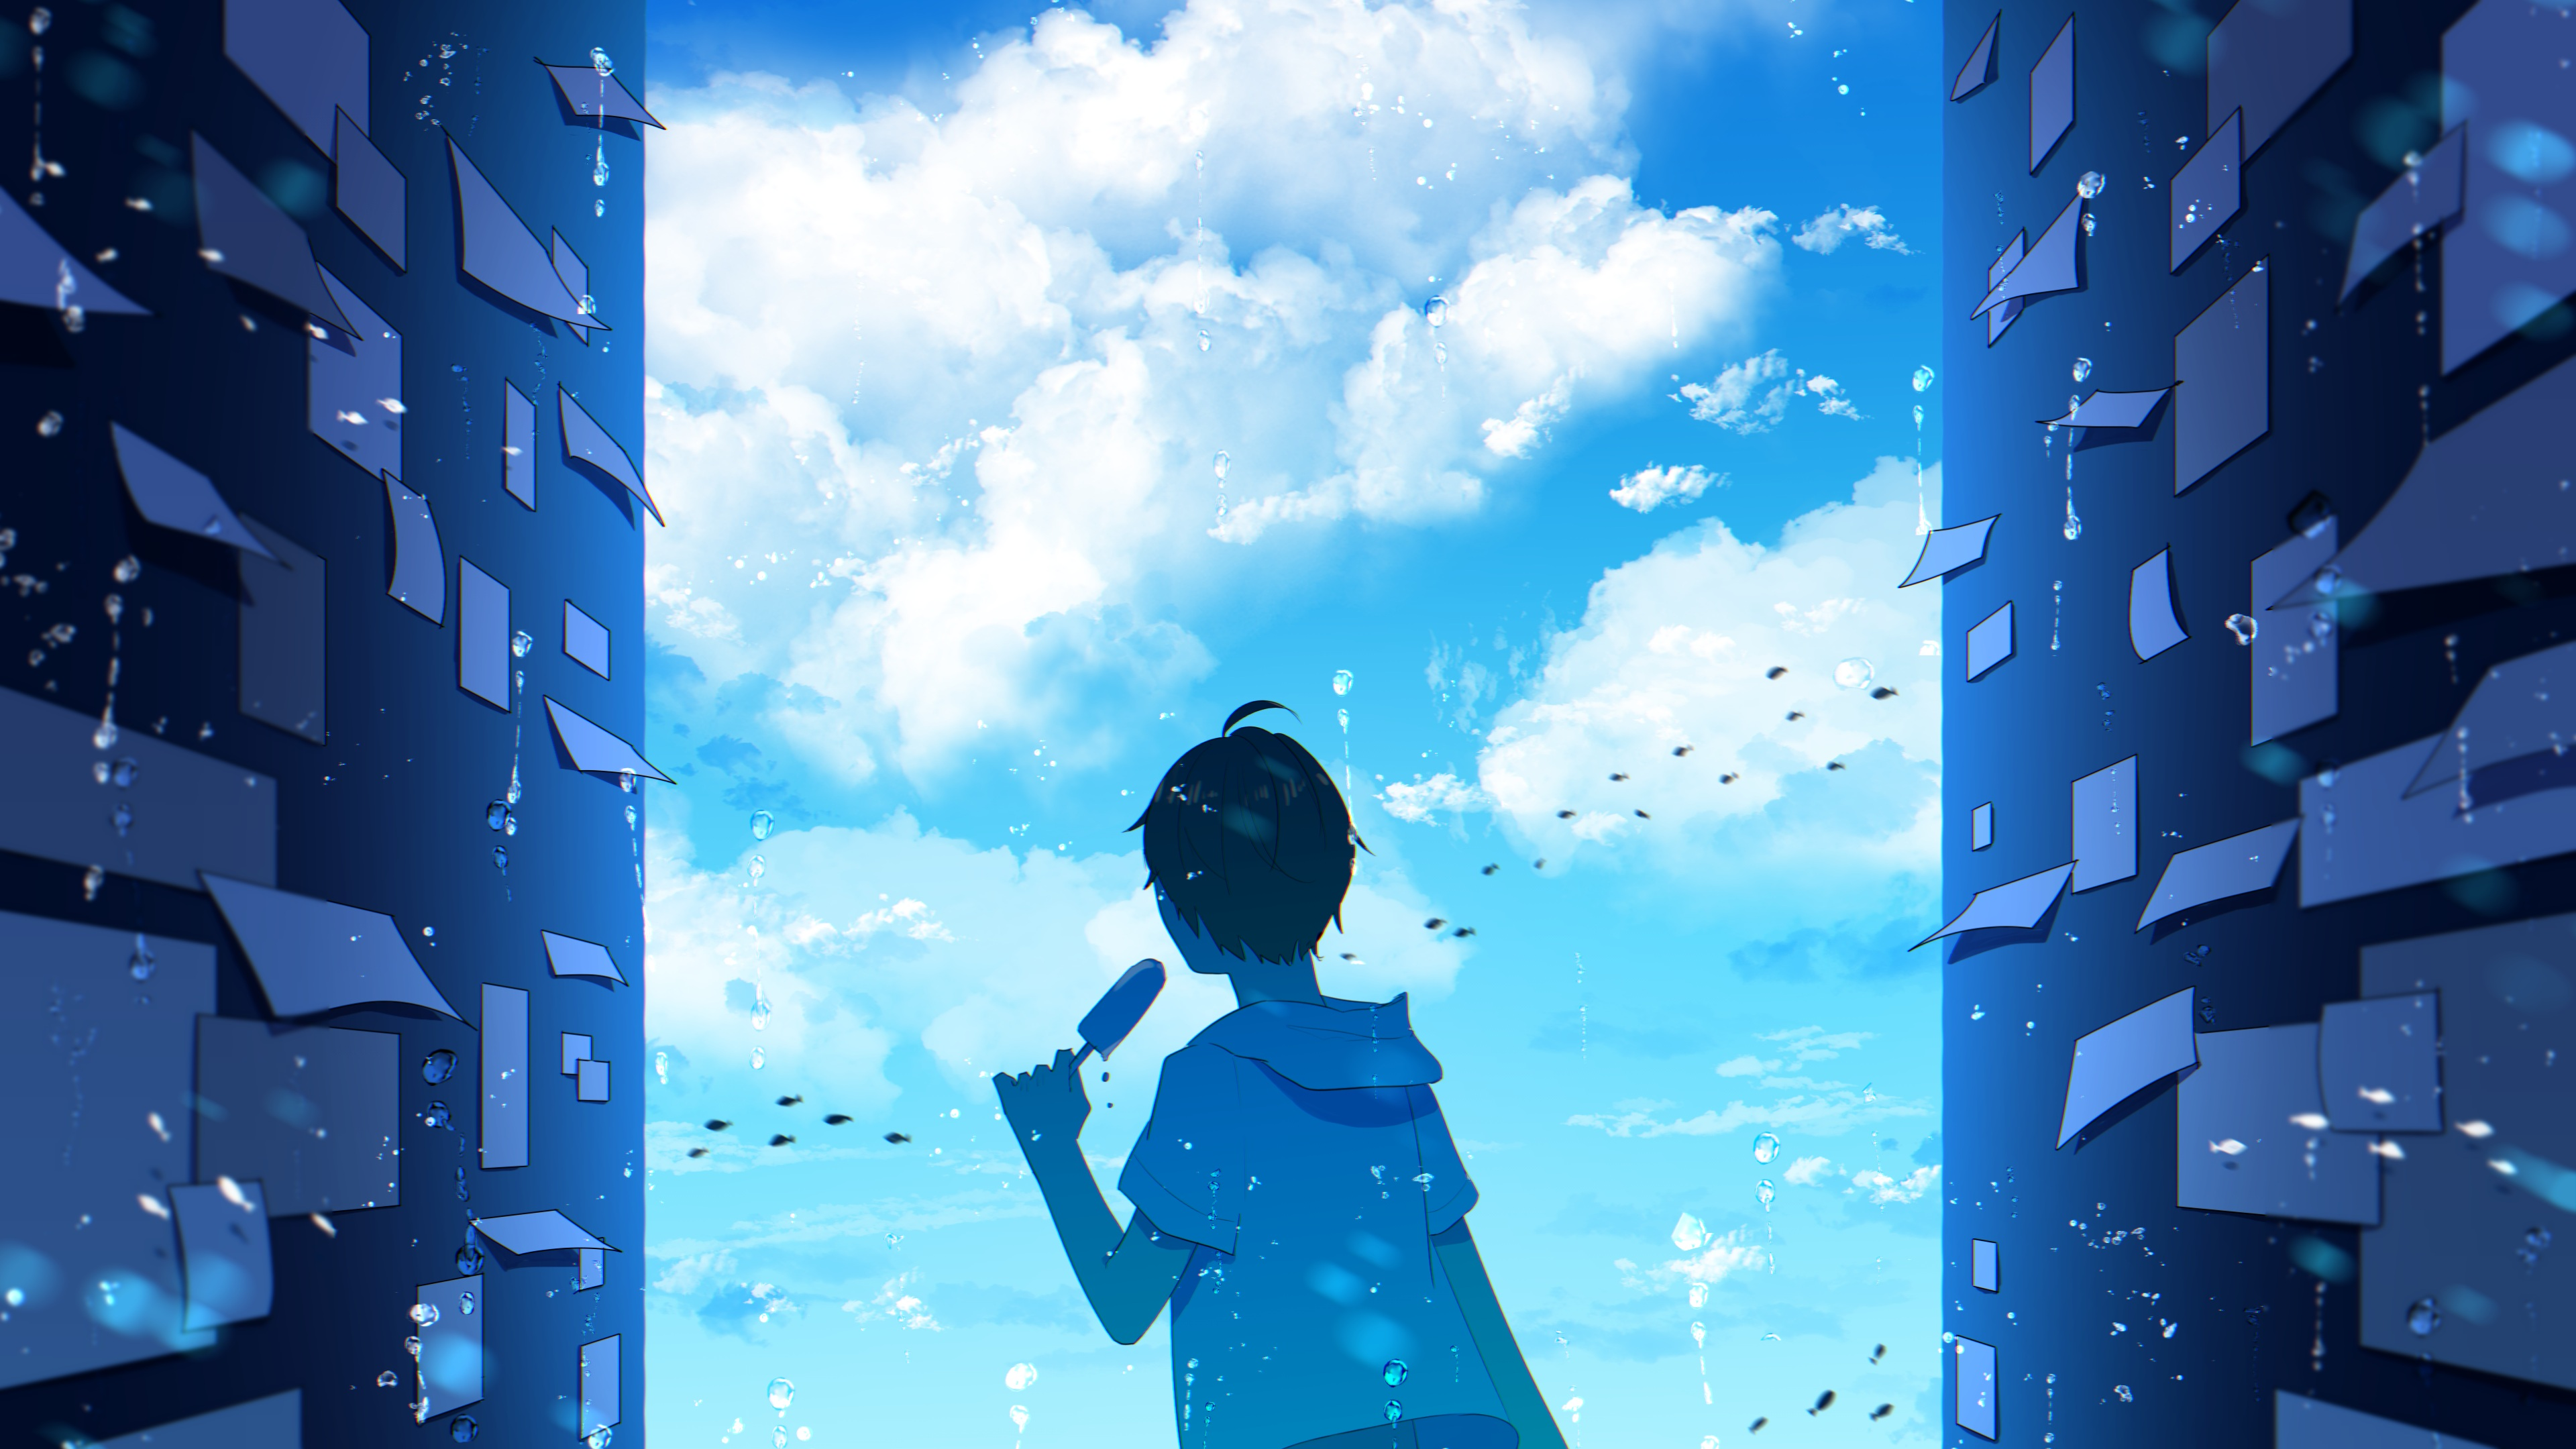 Anime 3840x2160 anime anime boys children people paper blue white sky skyscape clouds water ice cream horizon anime sky wall popsicle fish animals underwater fantasy art artwork outdoors landscape sea atmosphere environment concept art cyan